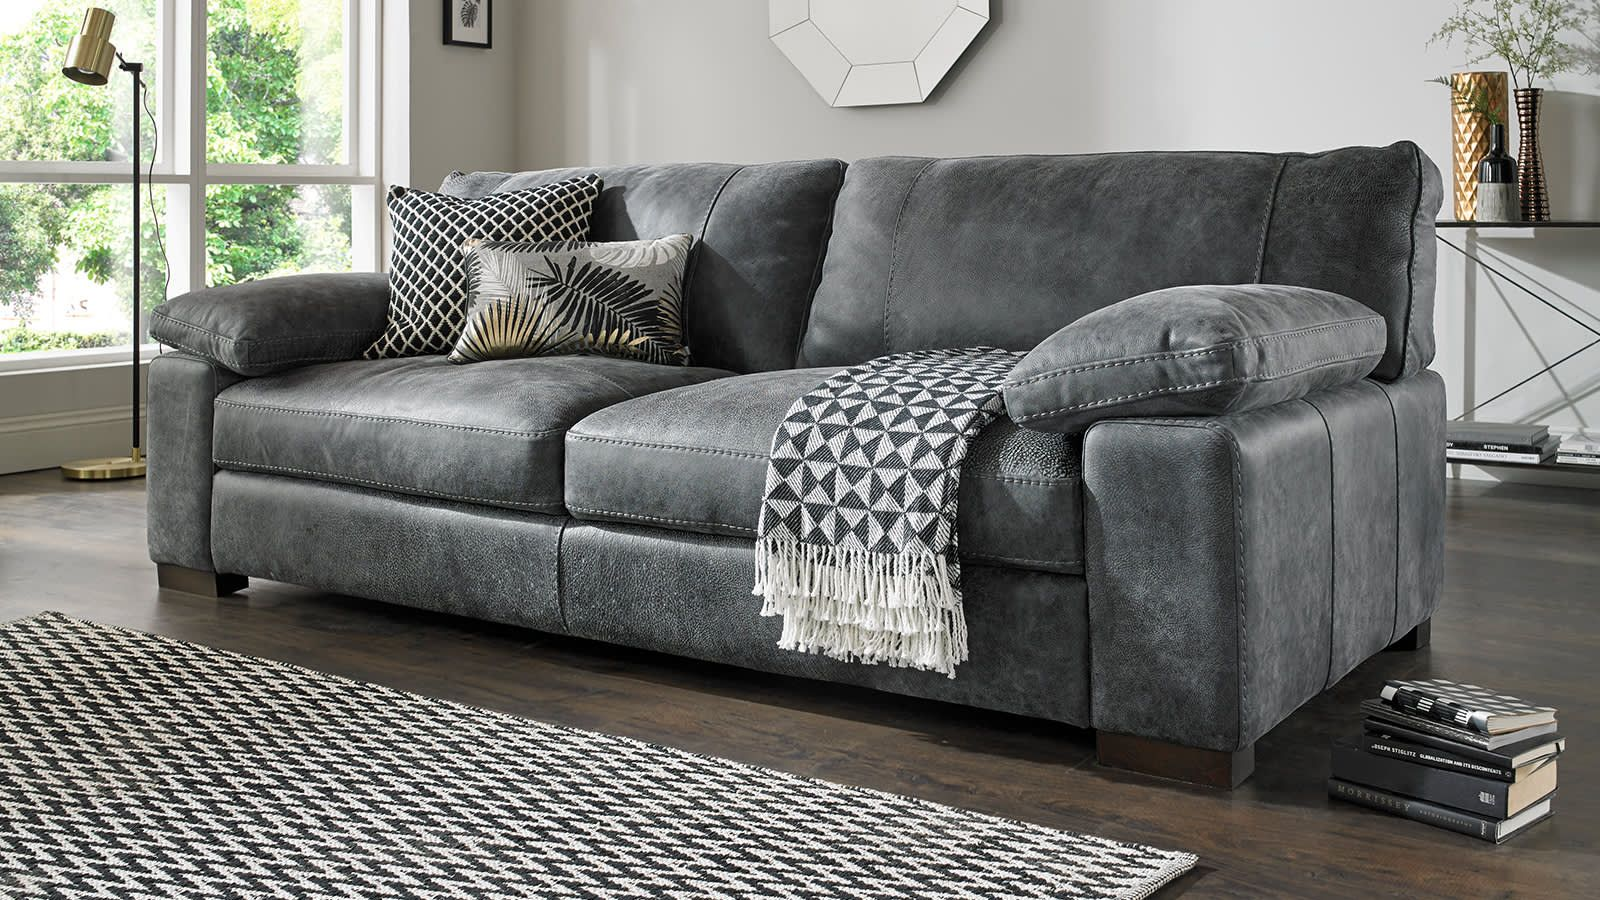 Sku 324 In 2020 Leather Sofa